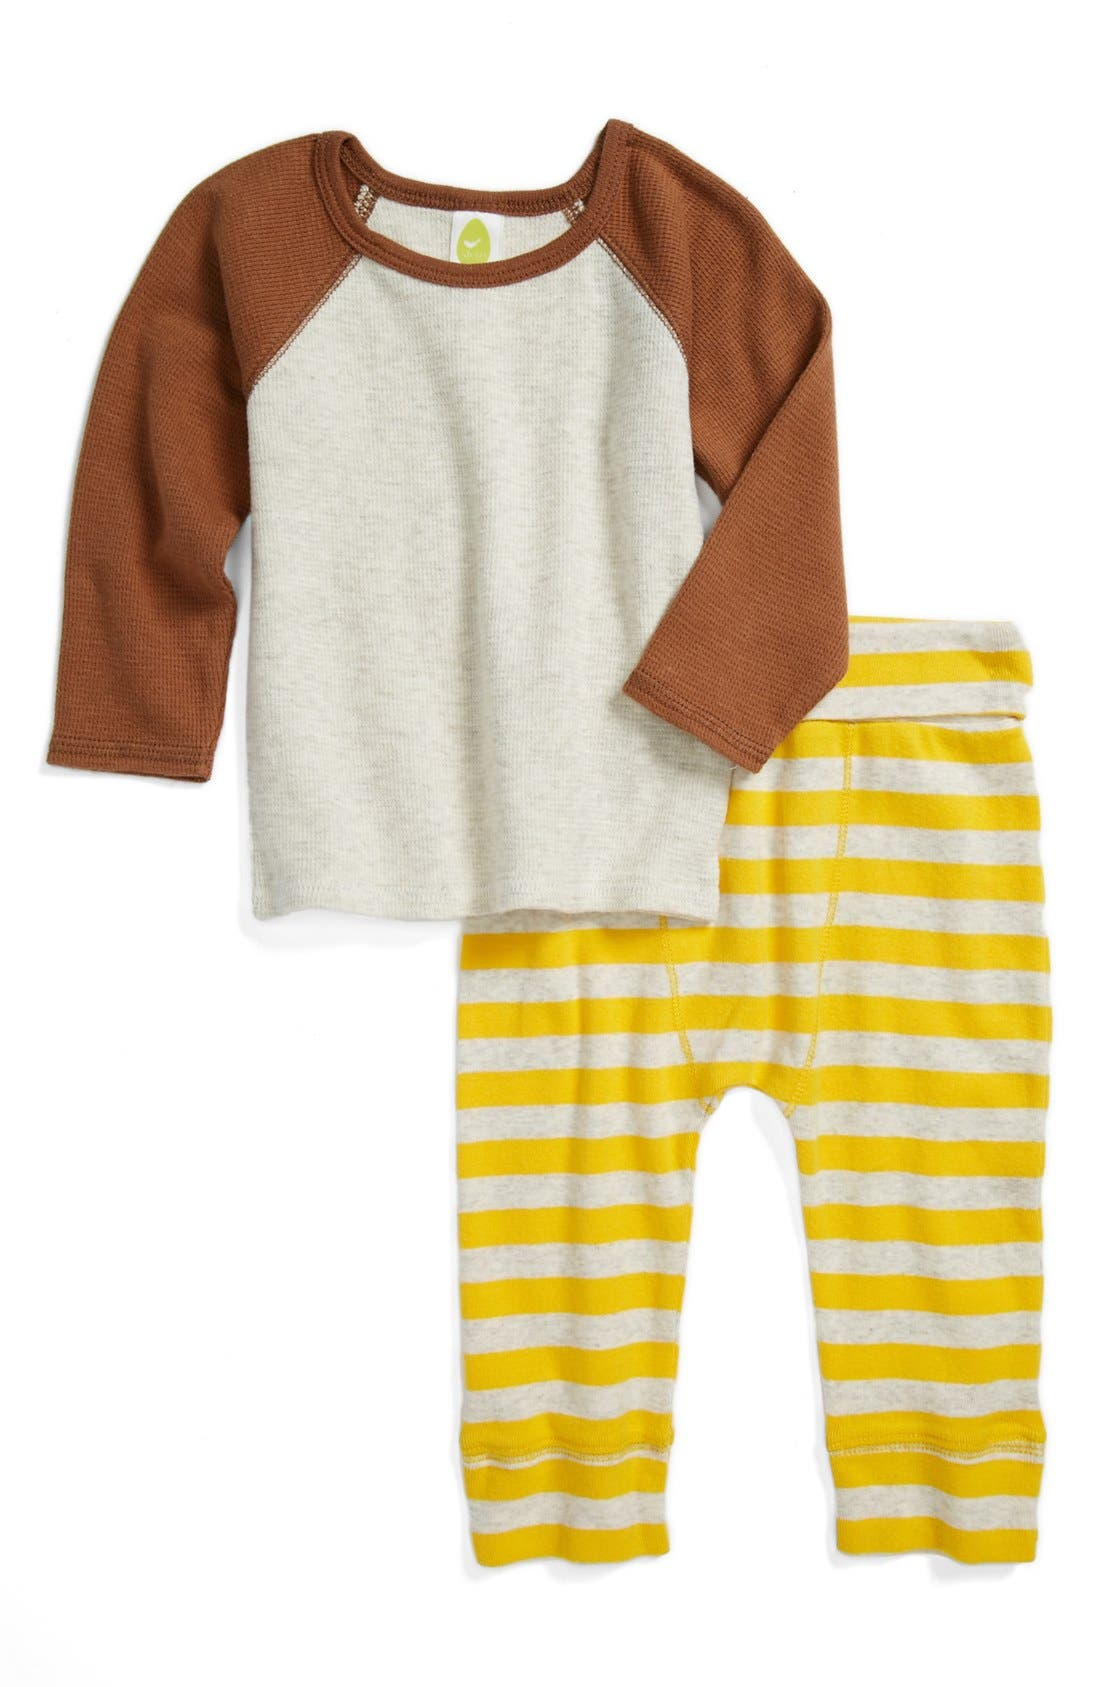 Alternate Image 1 Selected - Stem Baby Organic Cotton Top & Pants (Baby Boys)